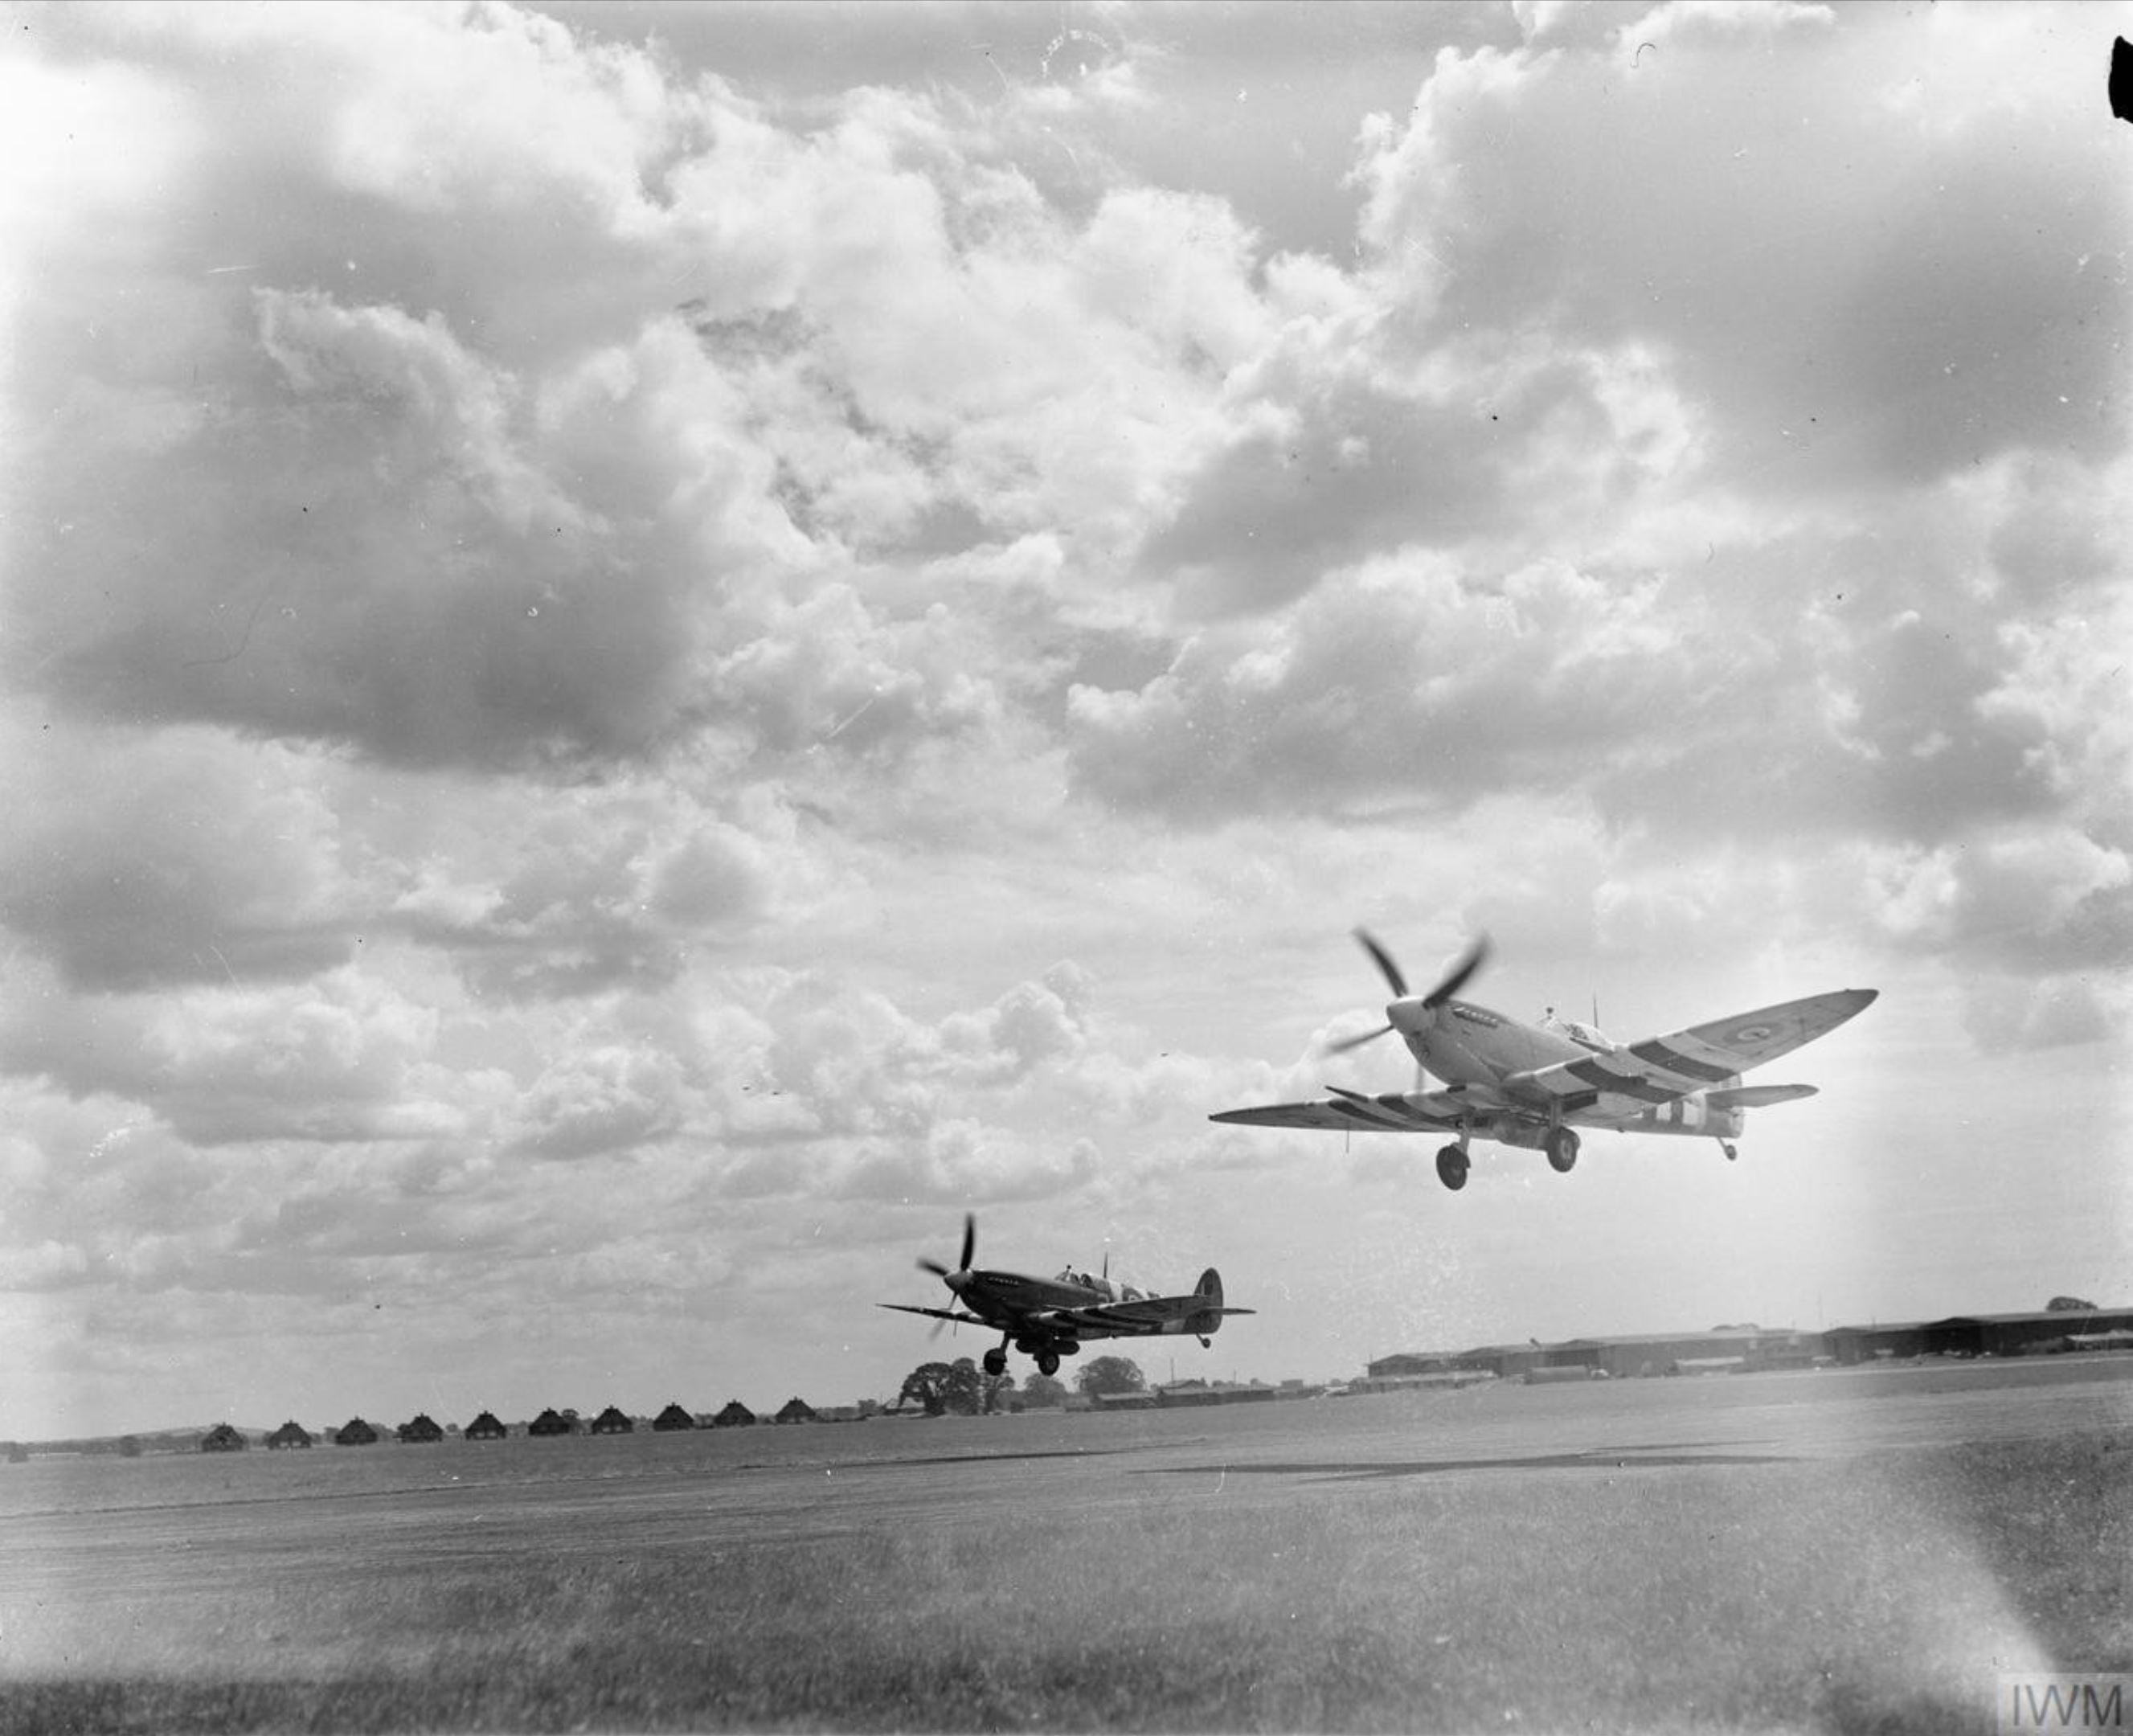 Spitfire MkIX RCAF 443Sqn take off from Ford Sussex IWM HU92139